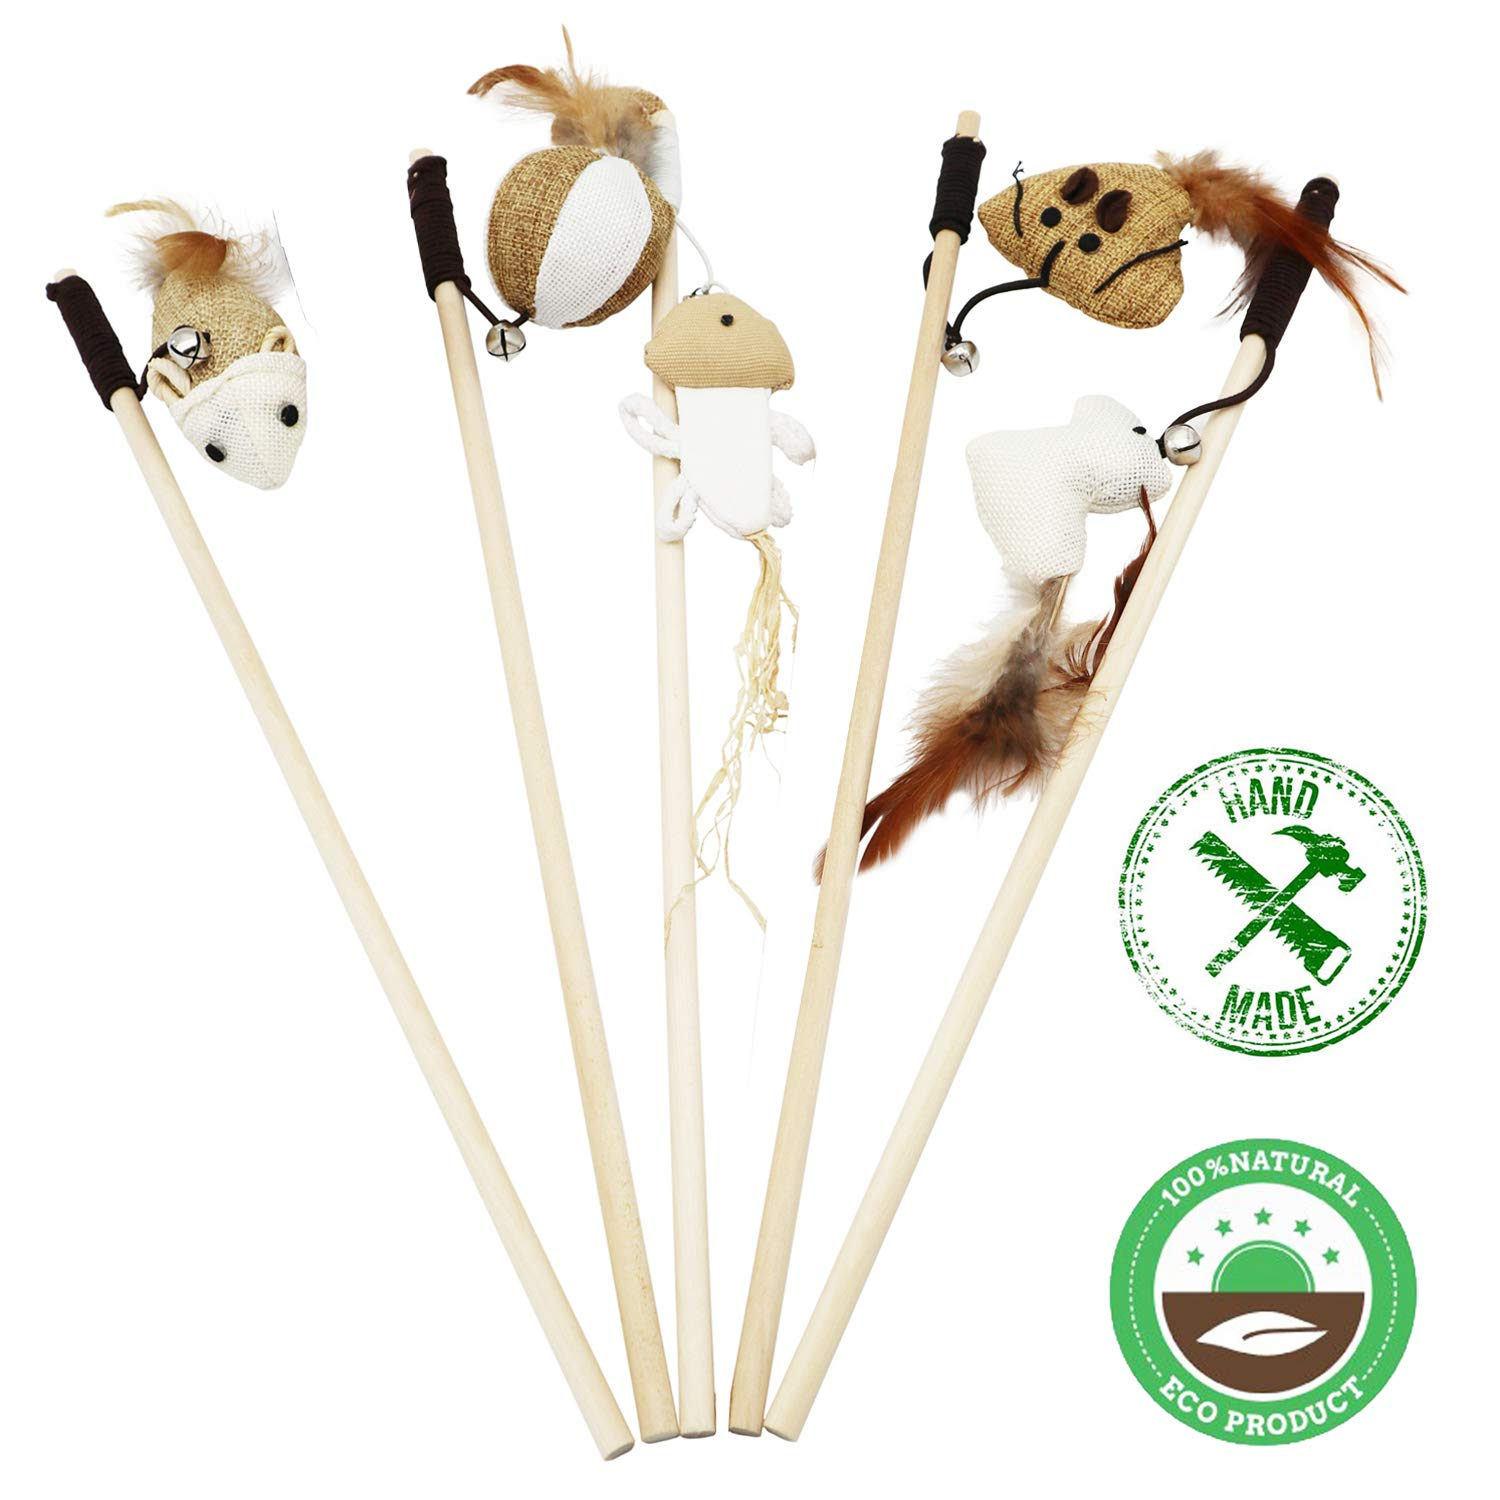 Ruri's Cat Toys Interactive Wand Wand Cat Toy Set of 5 Natural Sisal Material Bell, Feather, Elastic String Sturdy Wood Rod